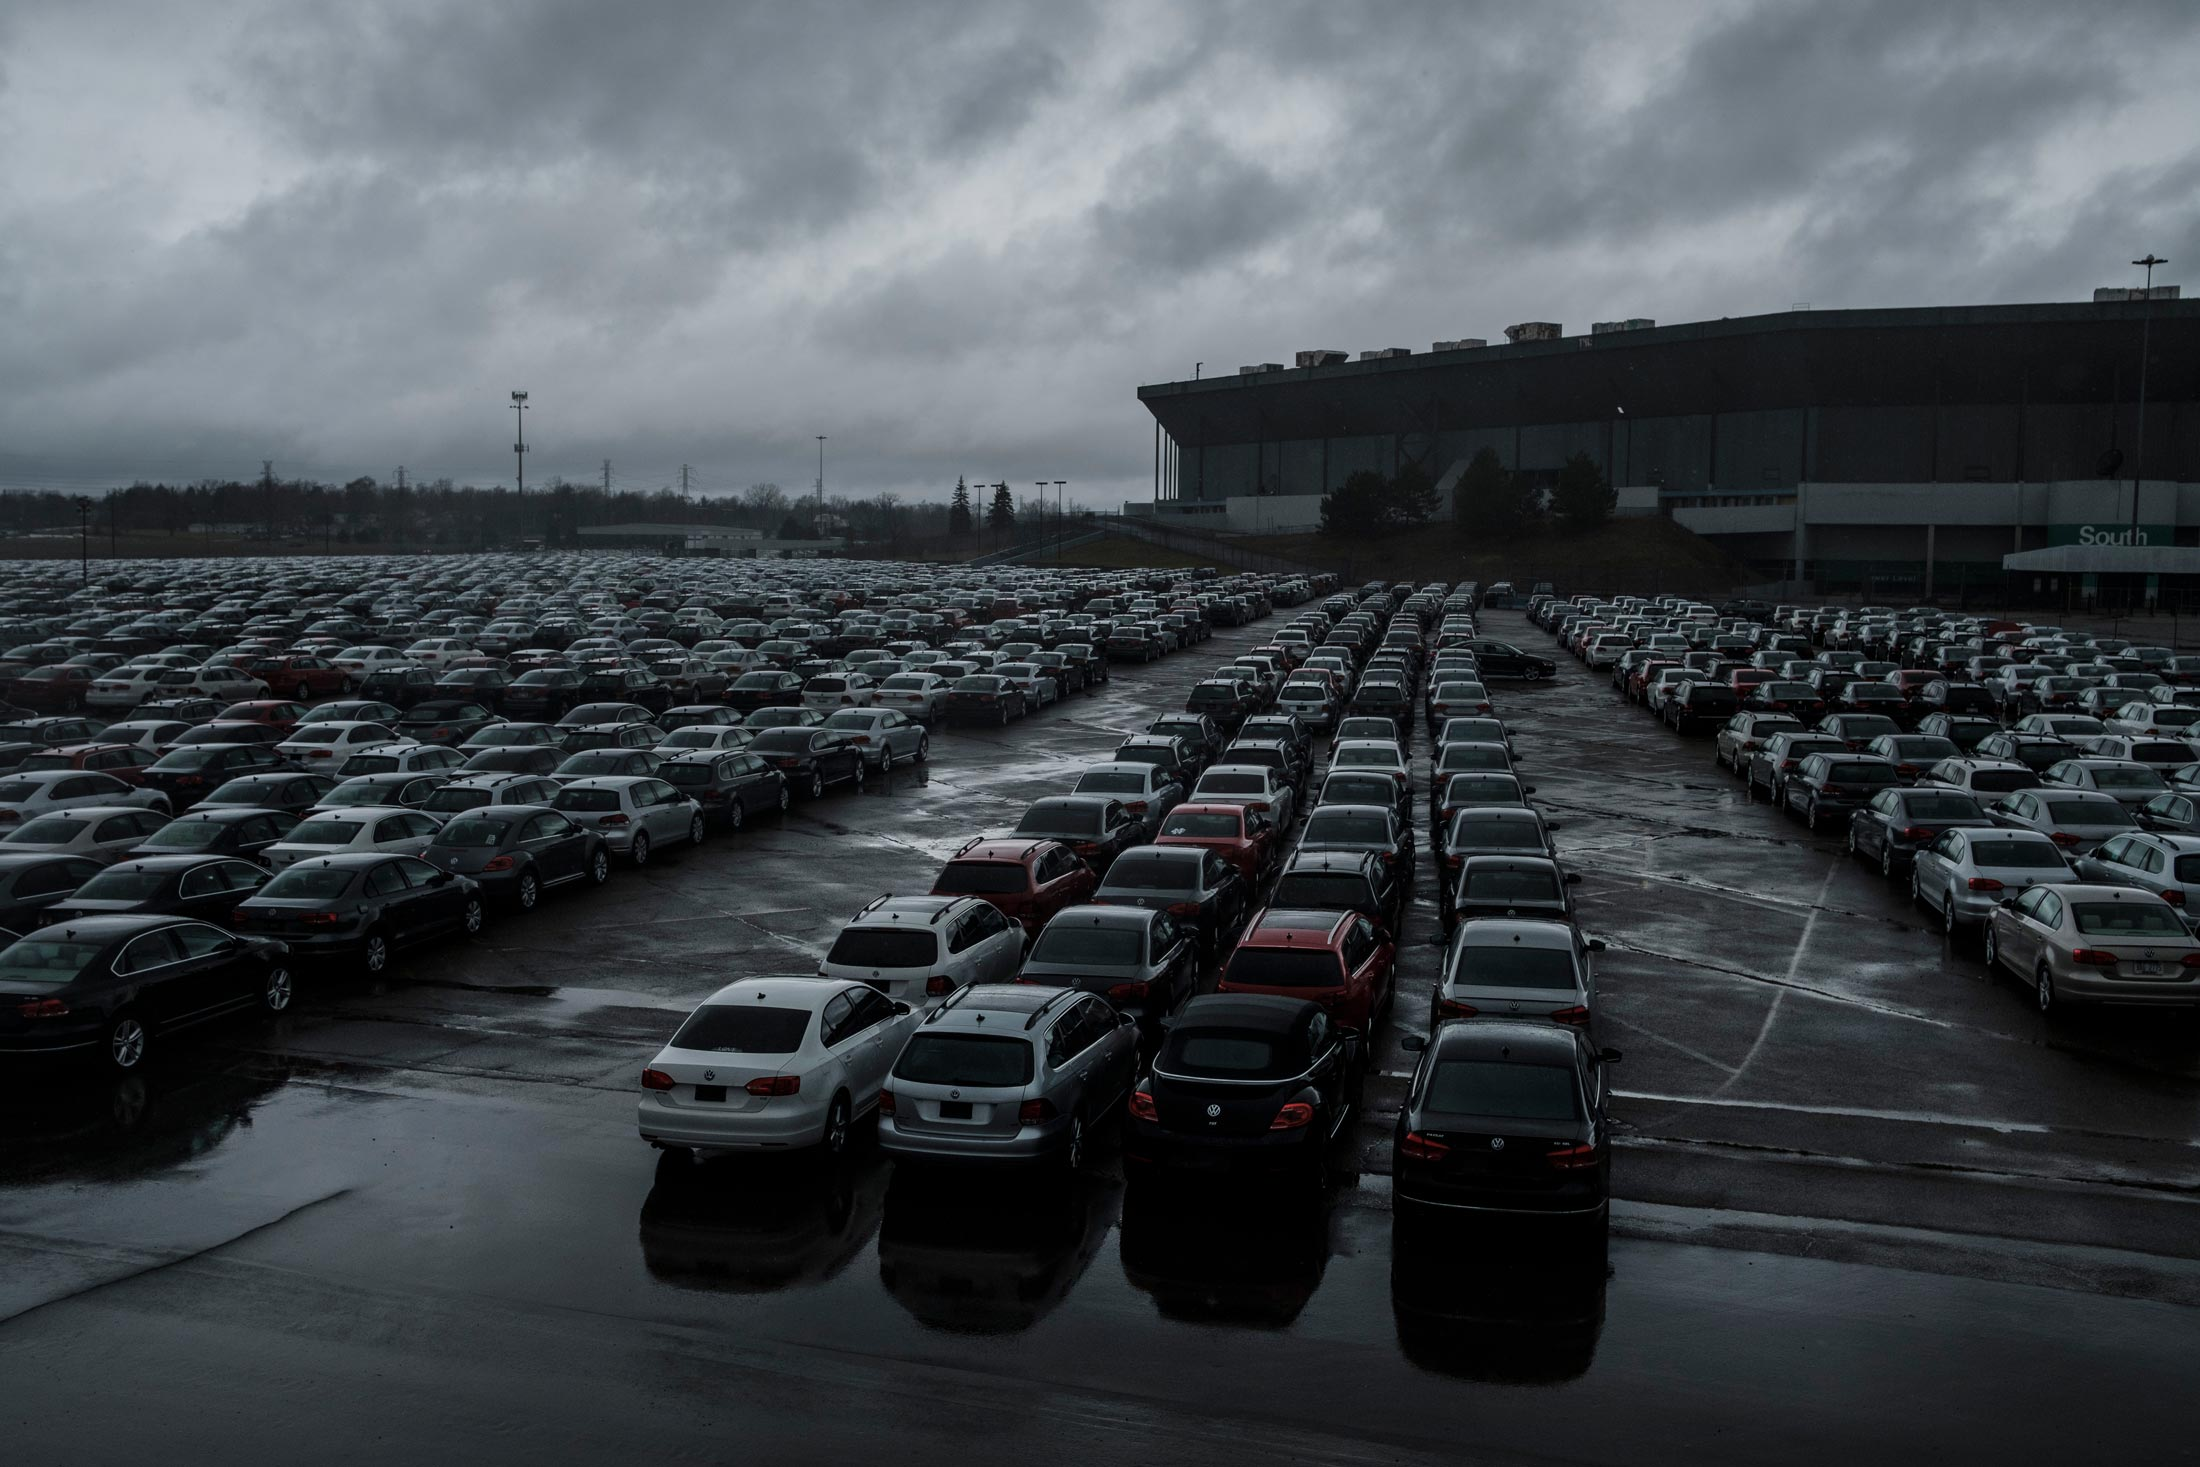 VWs Pile Up by Thousands Awaiting Fix or Scrap Yard in Buyback